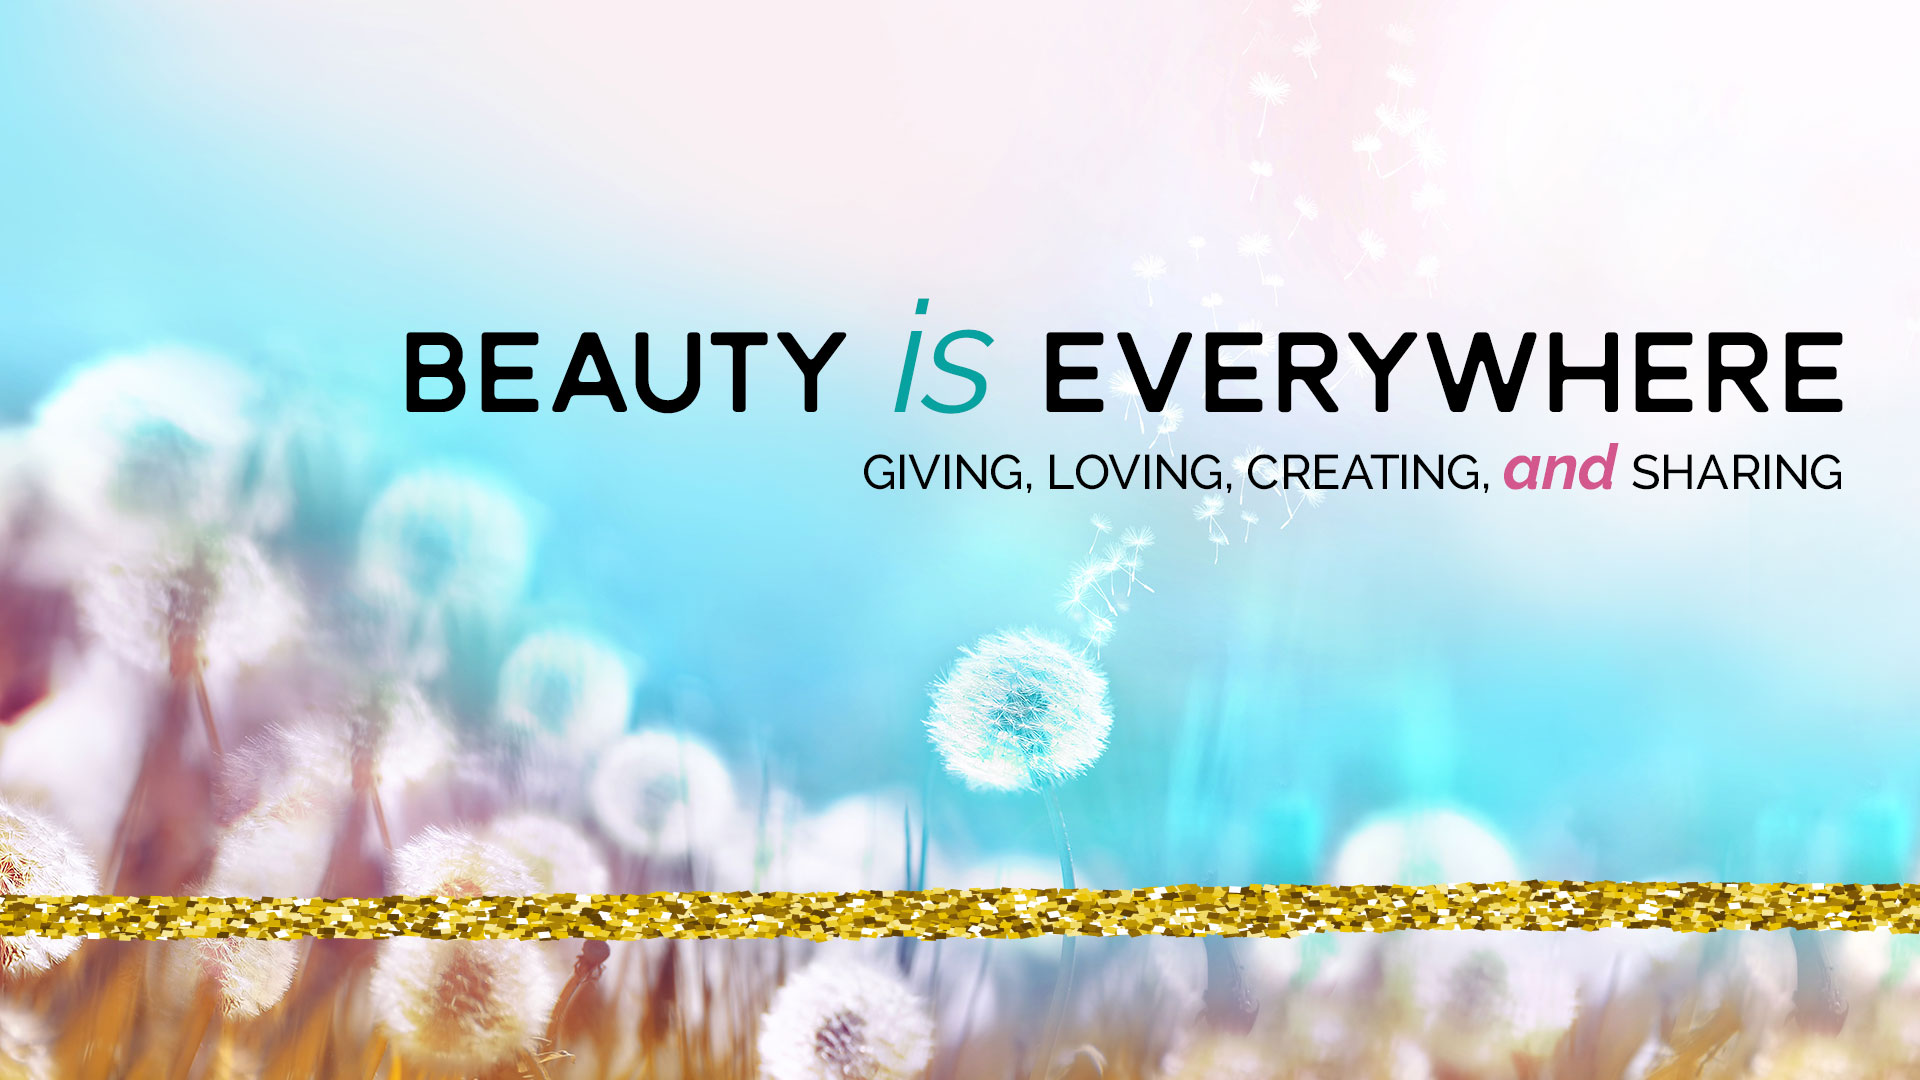 Beauty Everywhere apps